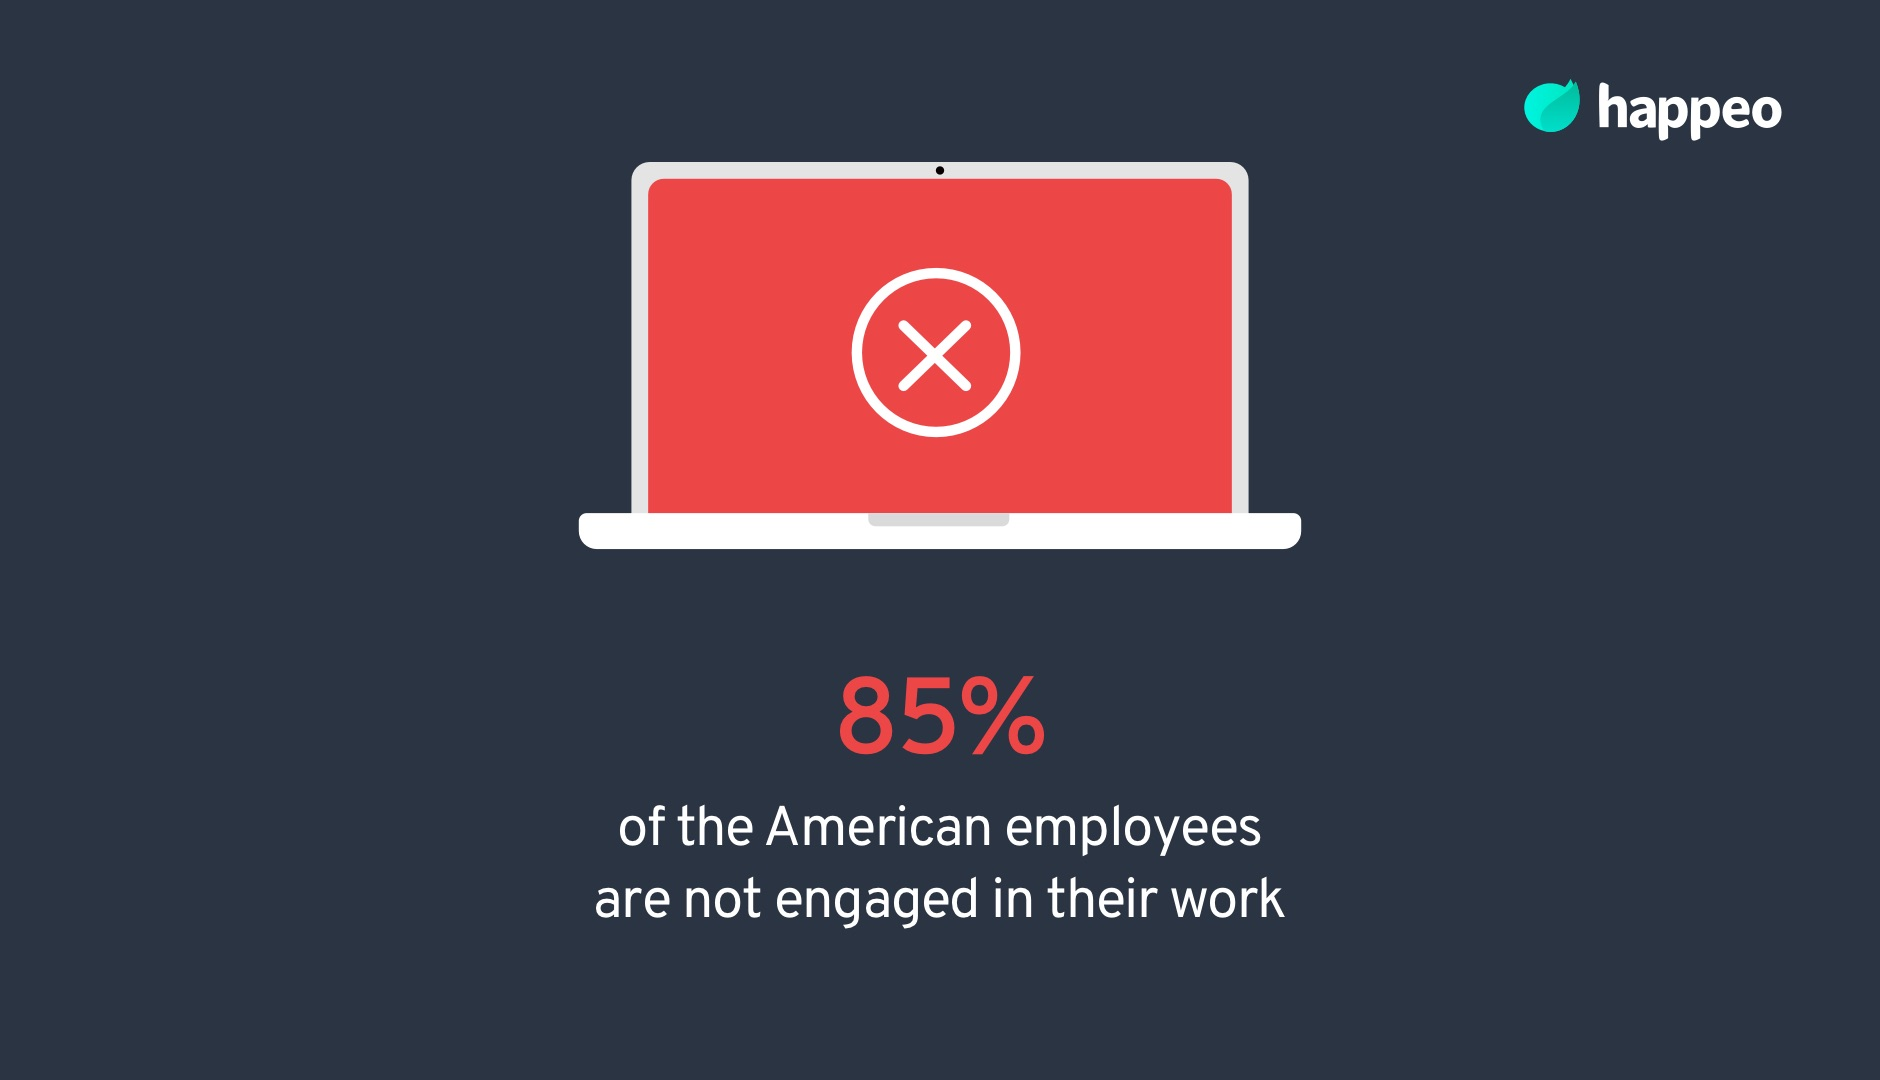 collaboration with employees - employees are not engaged